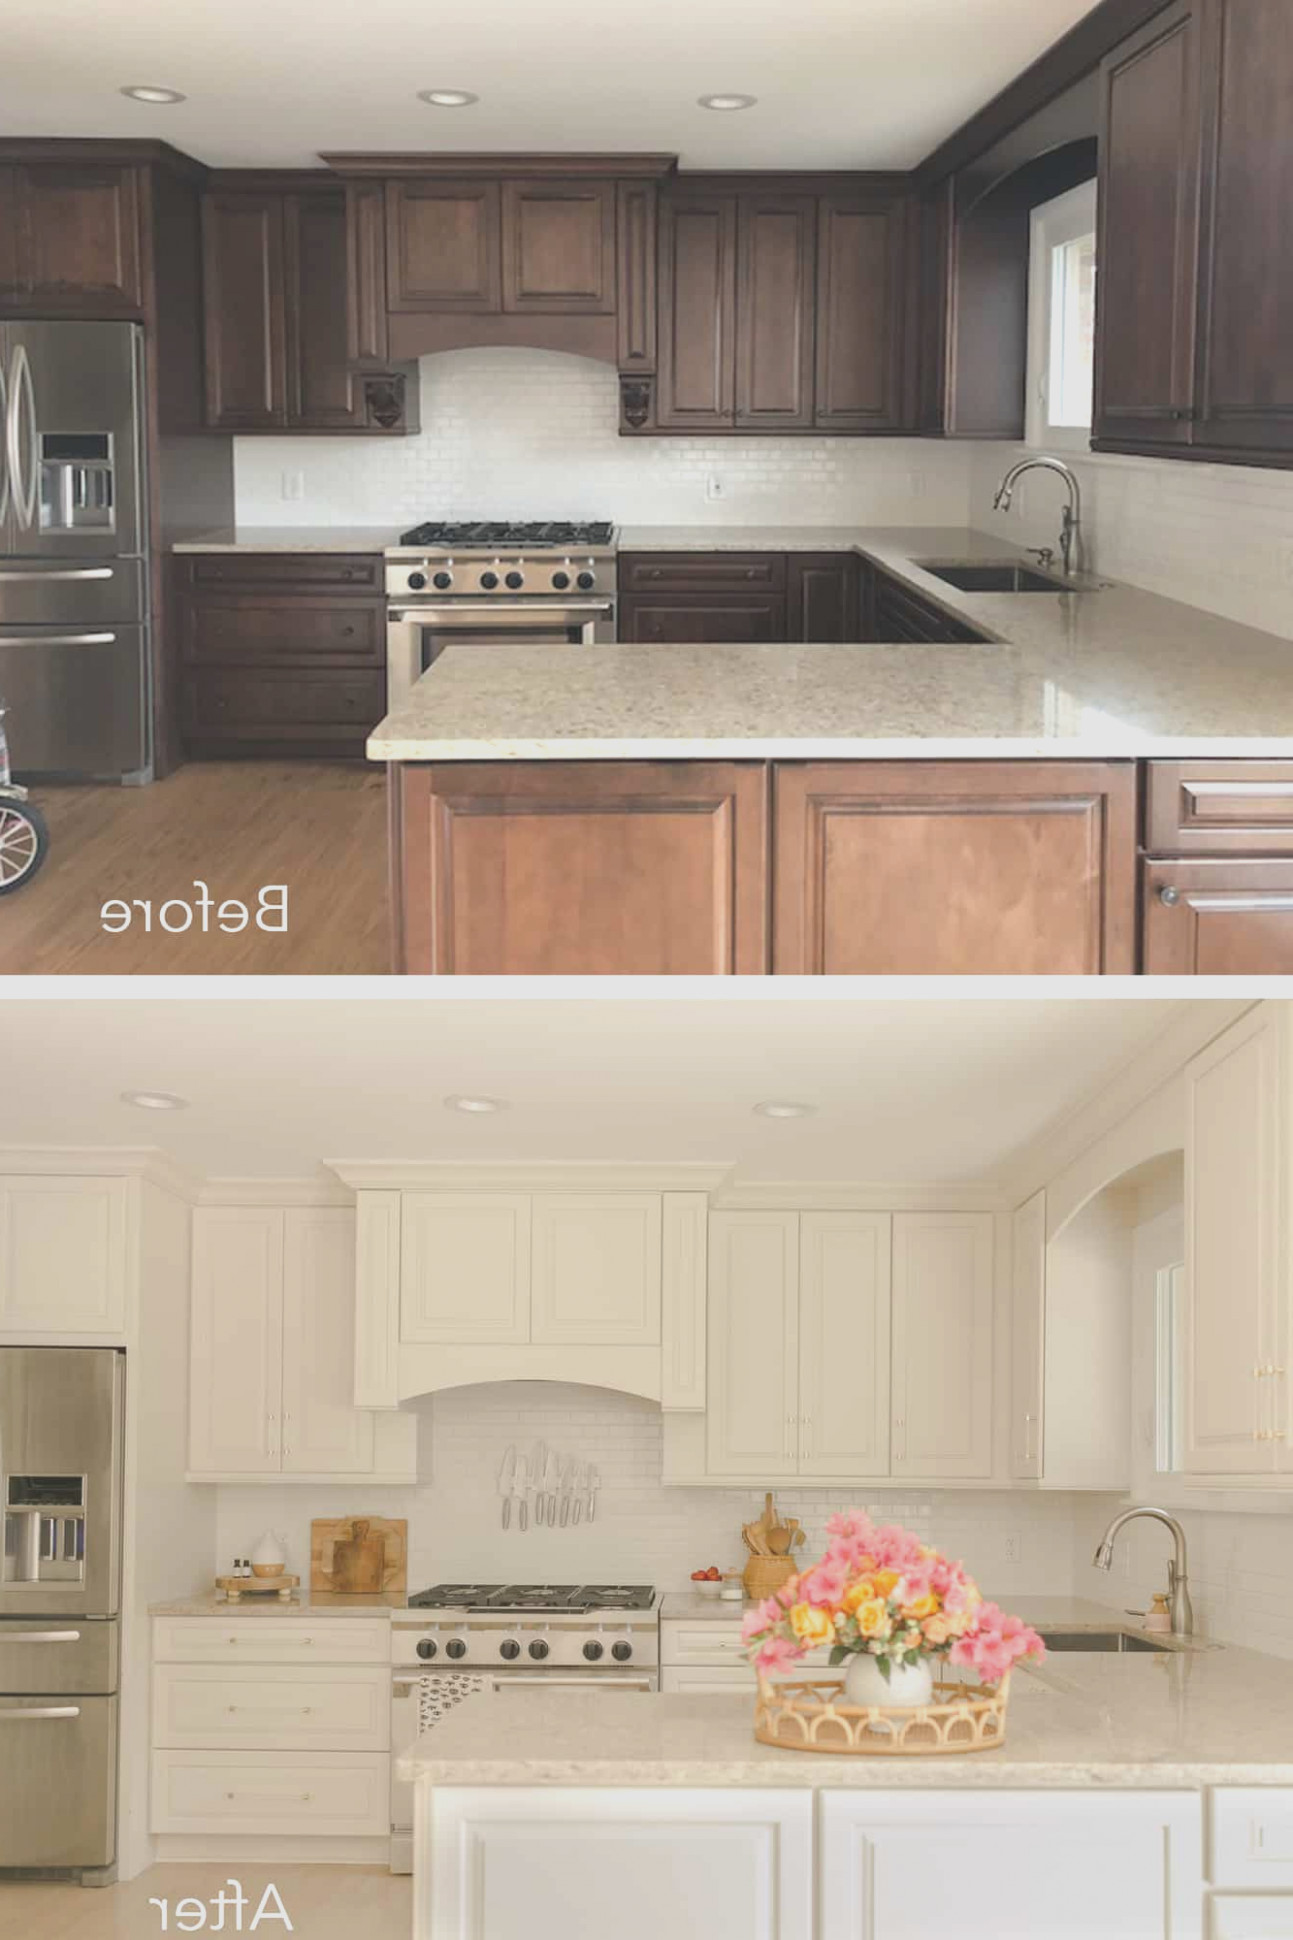 Best Product to Paint Kitchen Cabinets